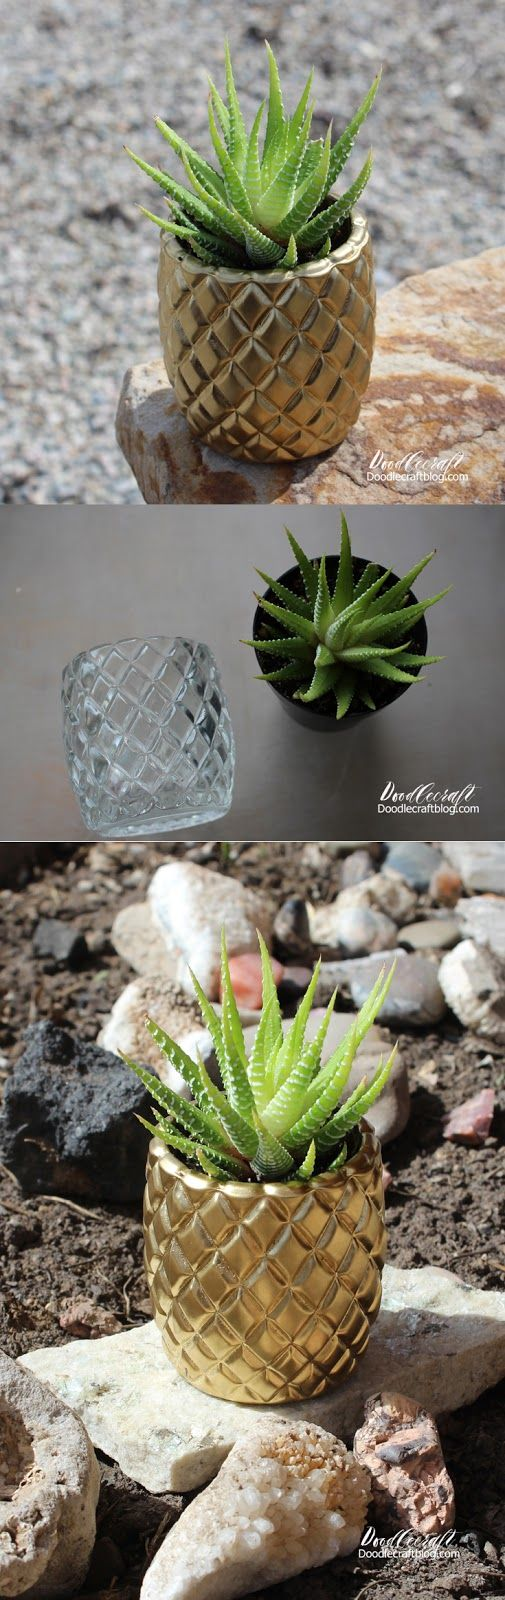 pineapple succulent planter quiero un jardin pinterest terrarios plantas y suculentas. Black Bedroom Furniture Sets. Home Design Ideas